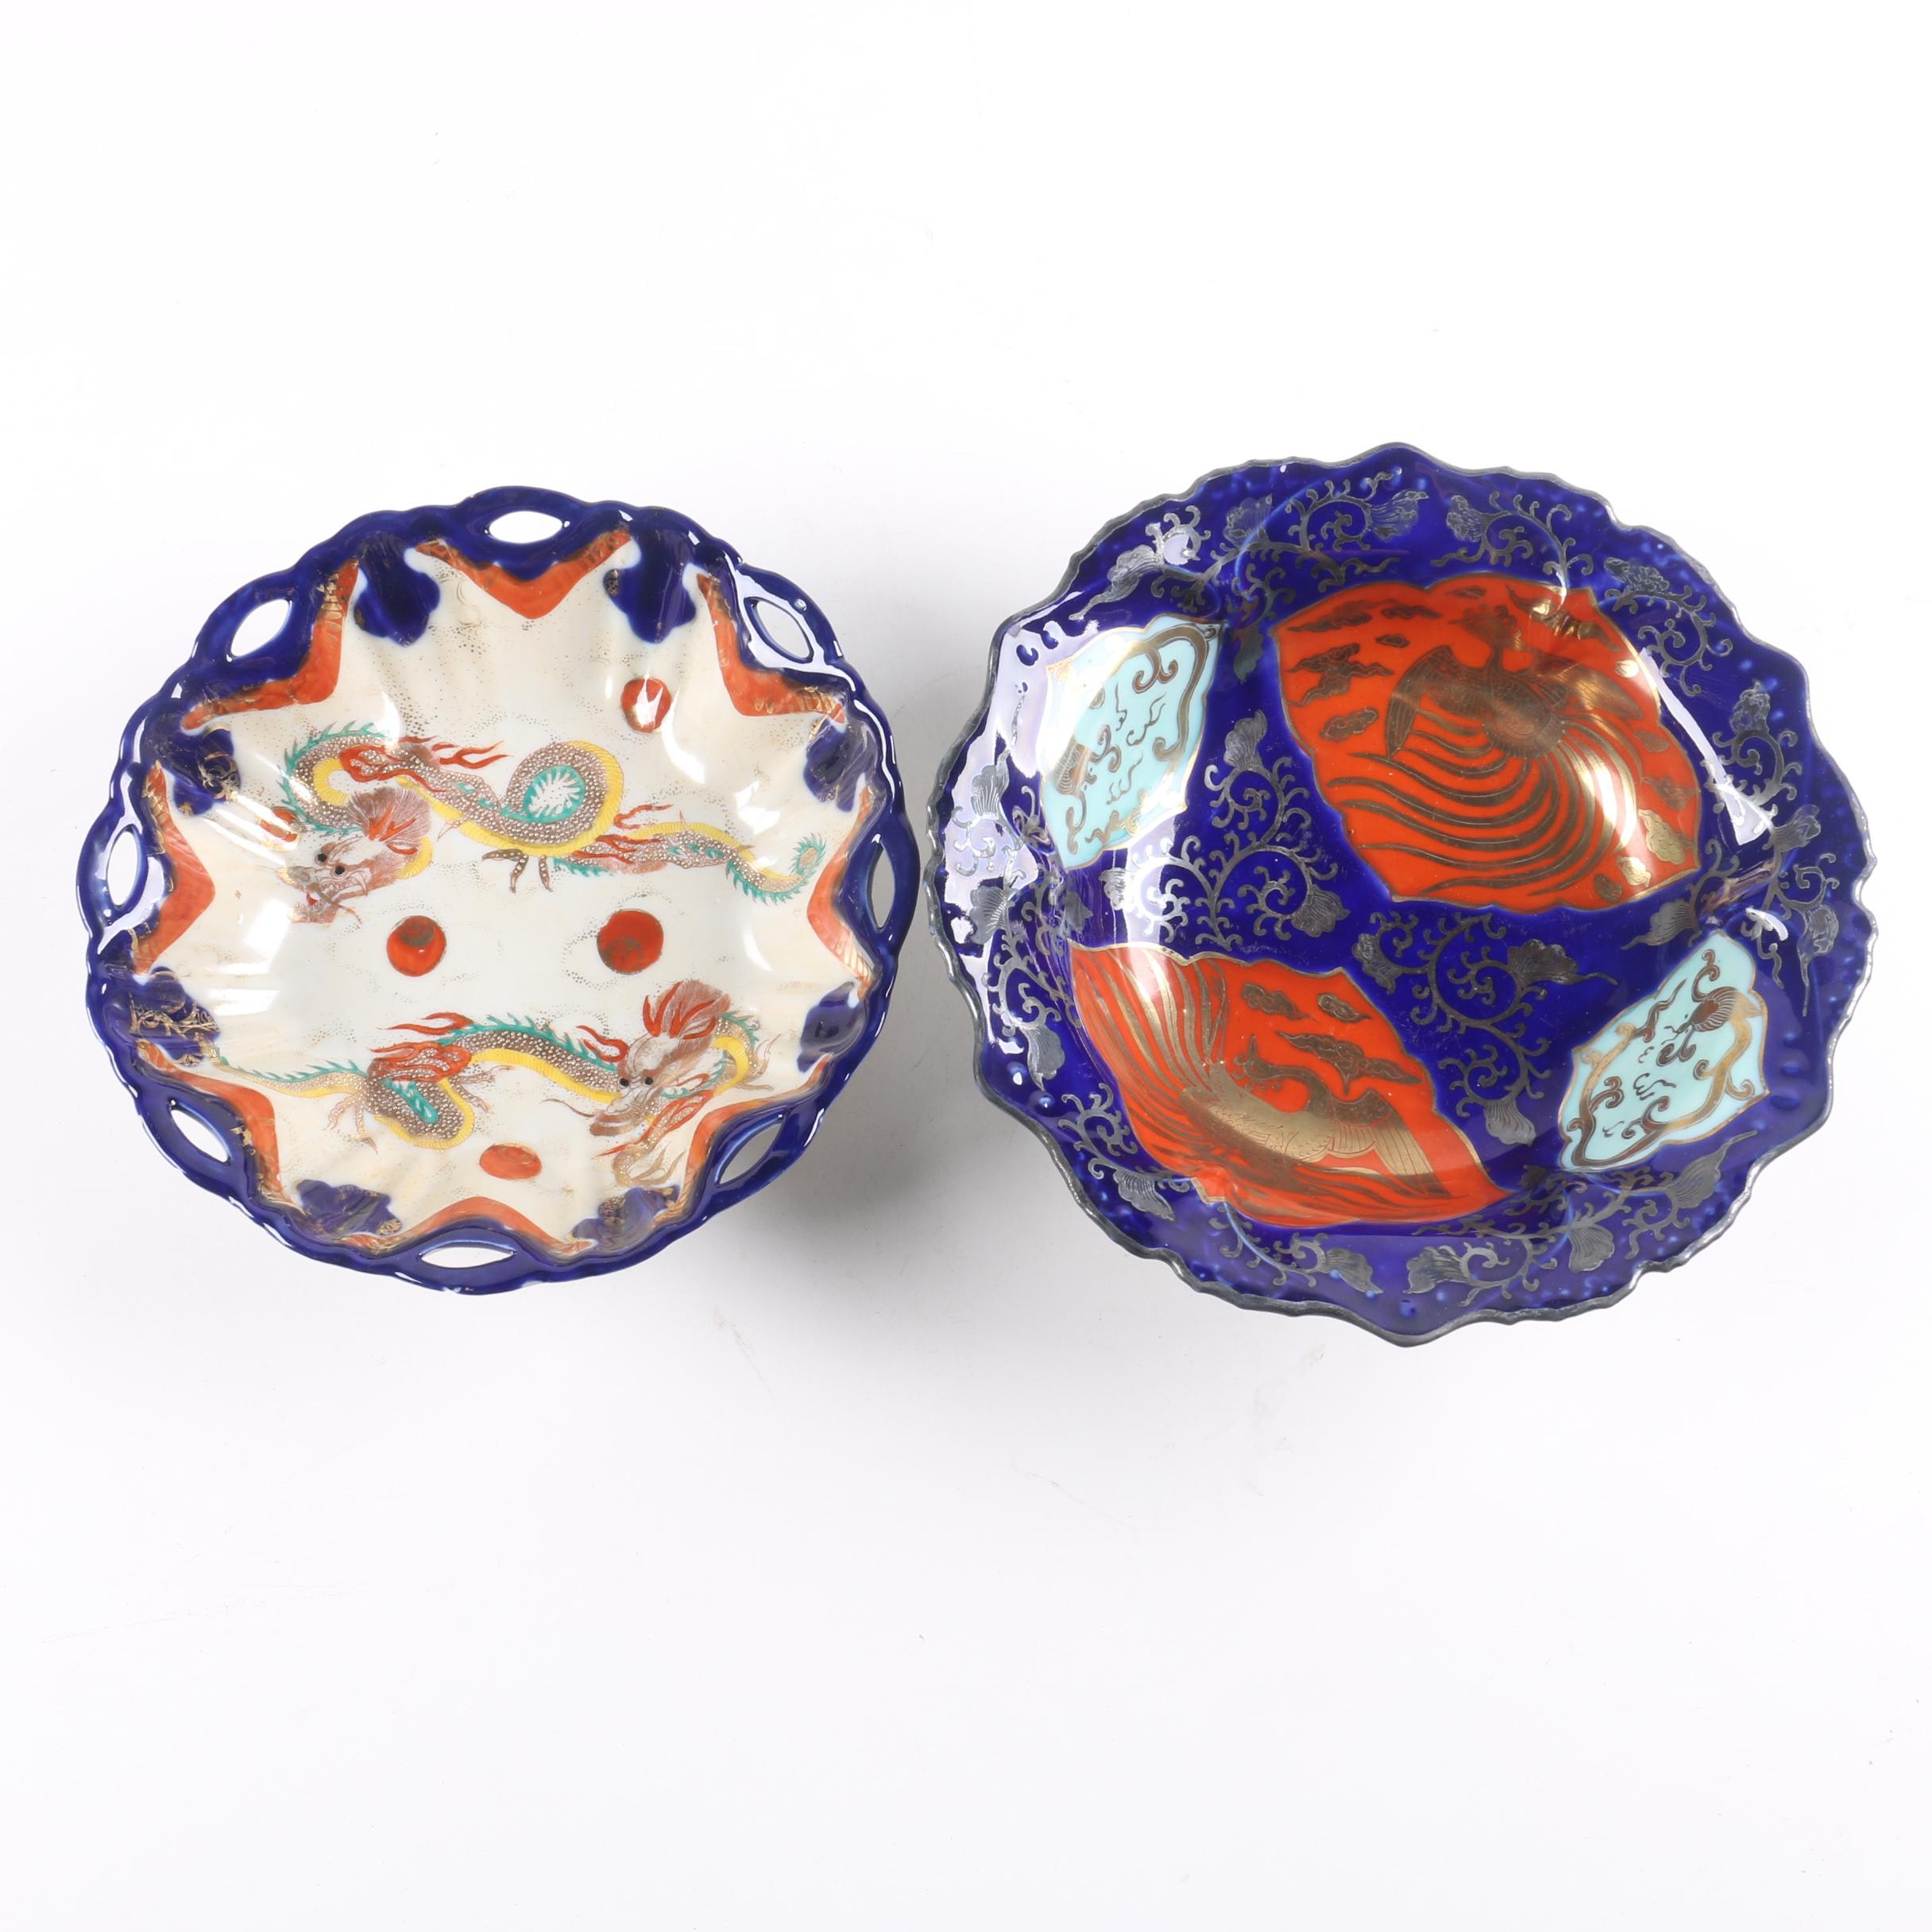 Handpainted Chinese Porcelain Bowls